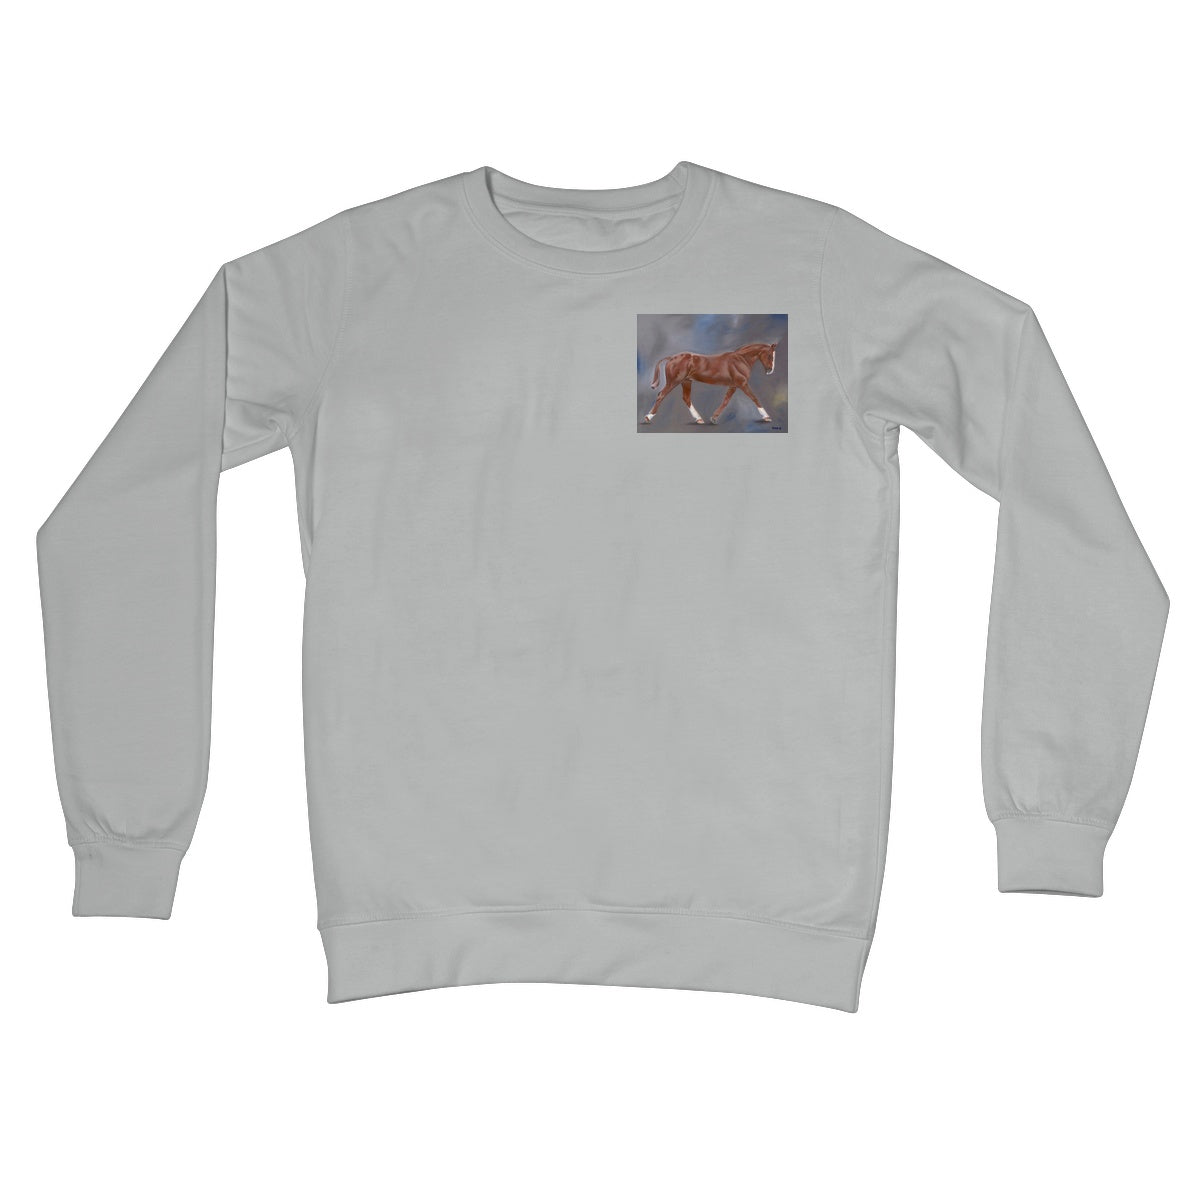 On Parade Crew Neck Sweatshirt